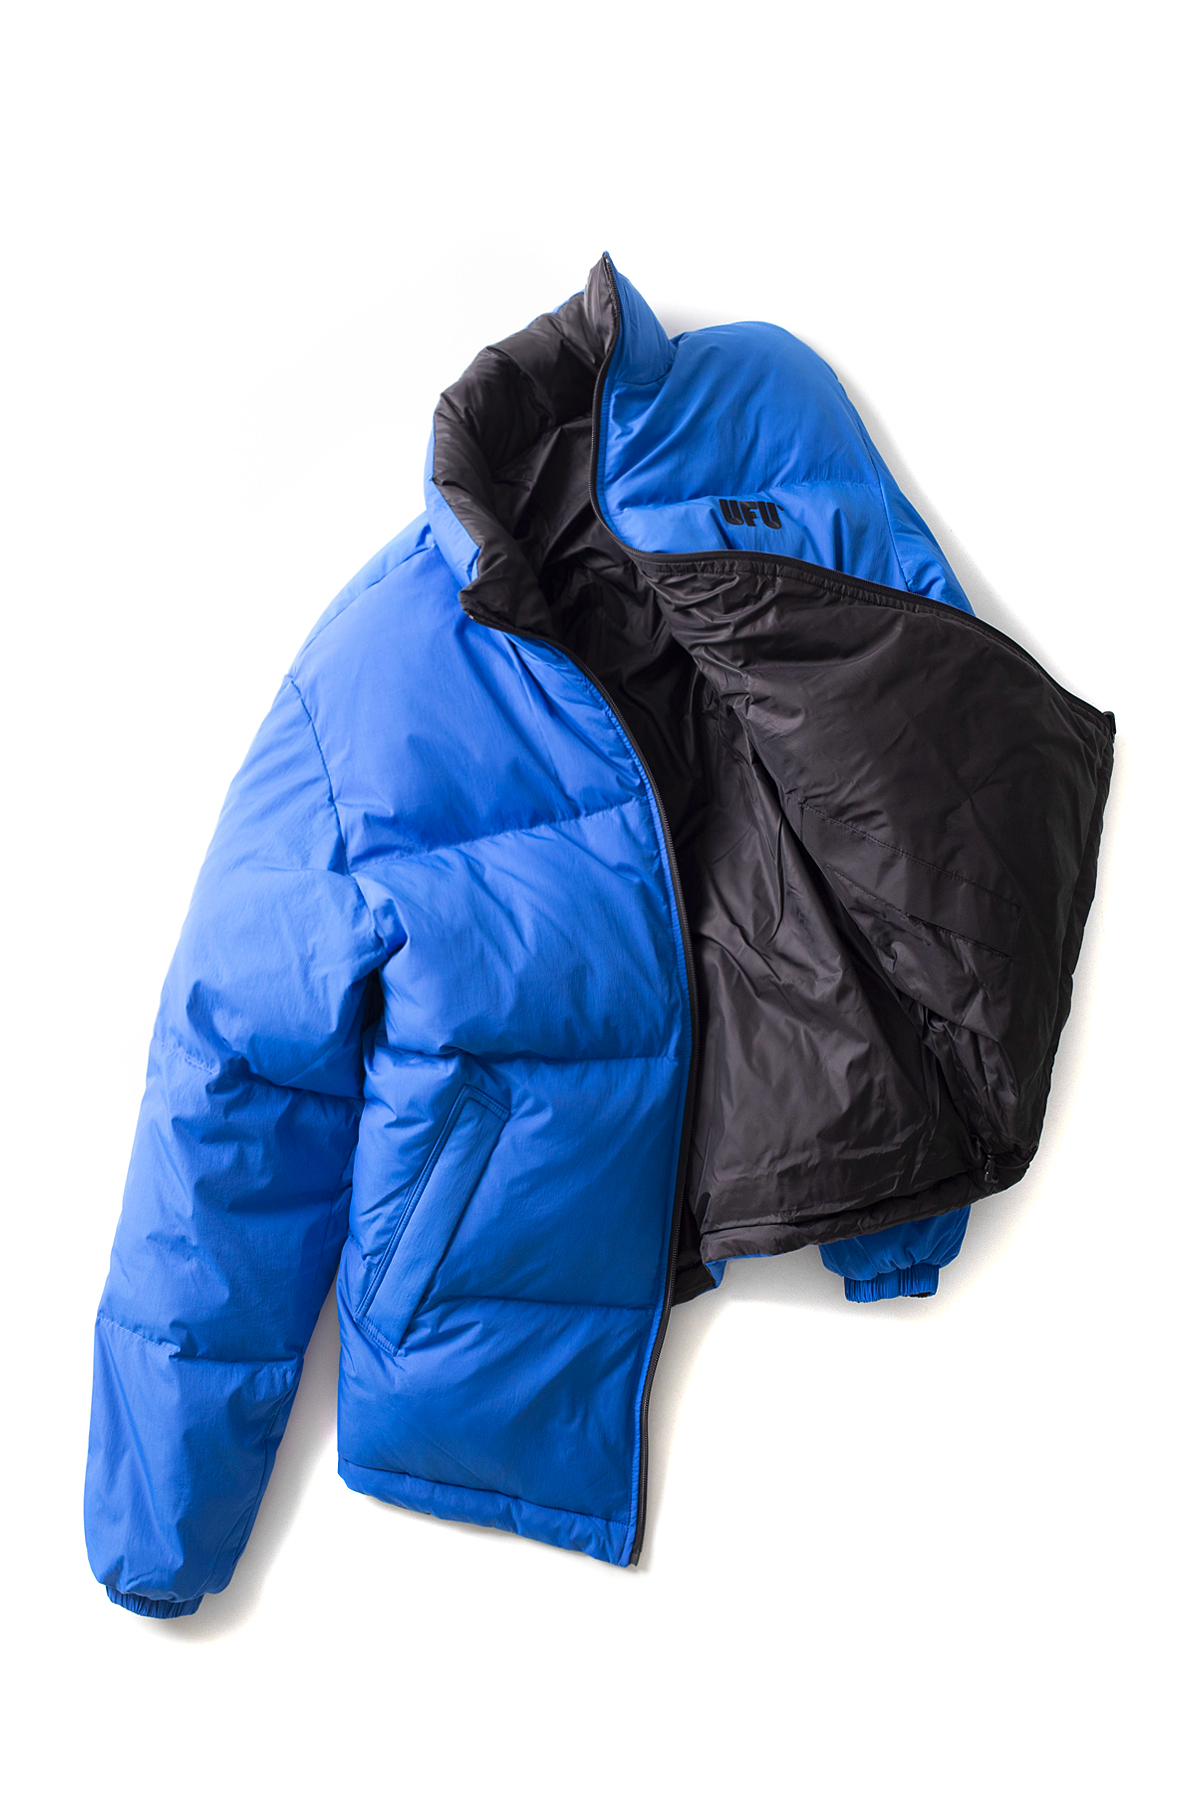 USED FUTURE : Sup Puffer (Blue)